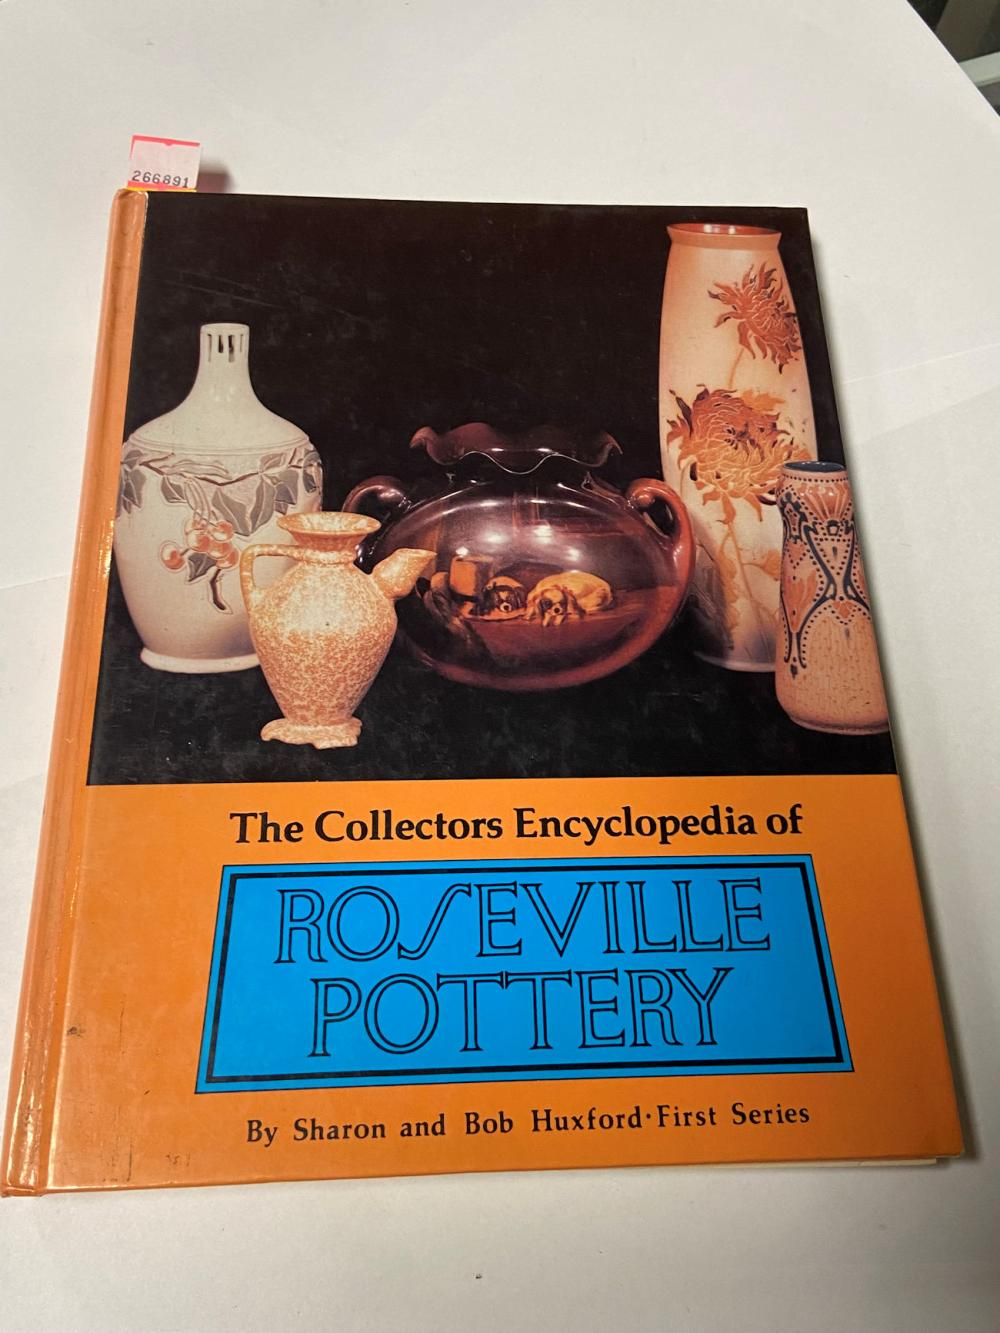 The Collectors Encyclopedia Roseville Pottery